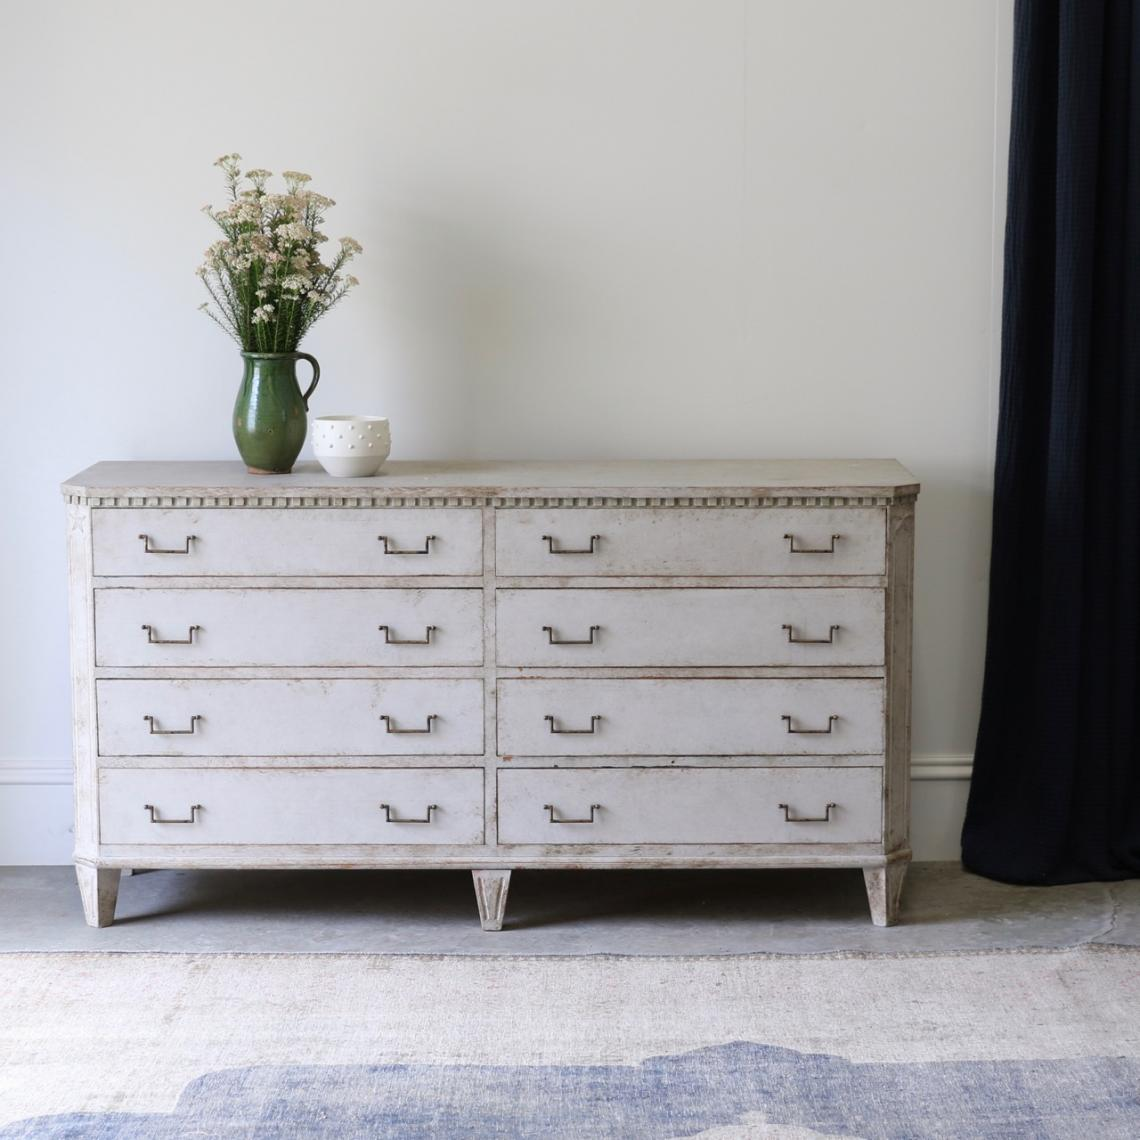 112-57 - Swedish Chest of Drawers